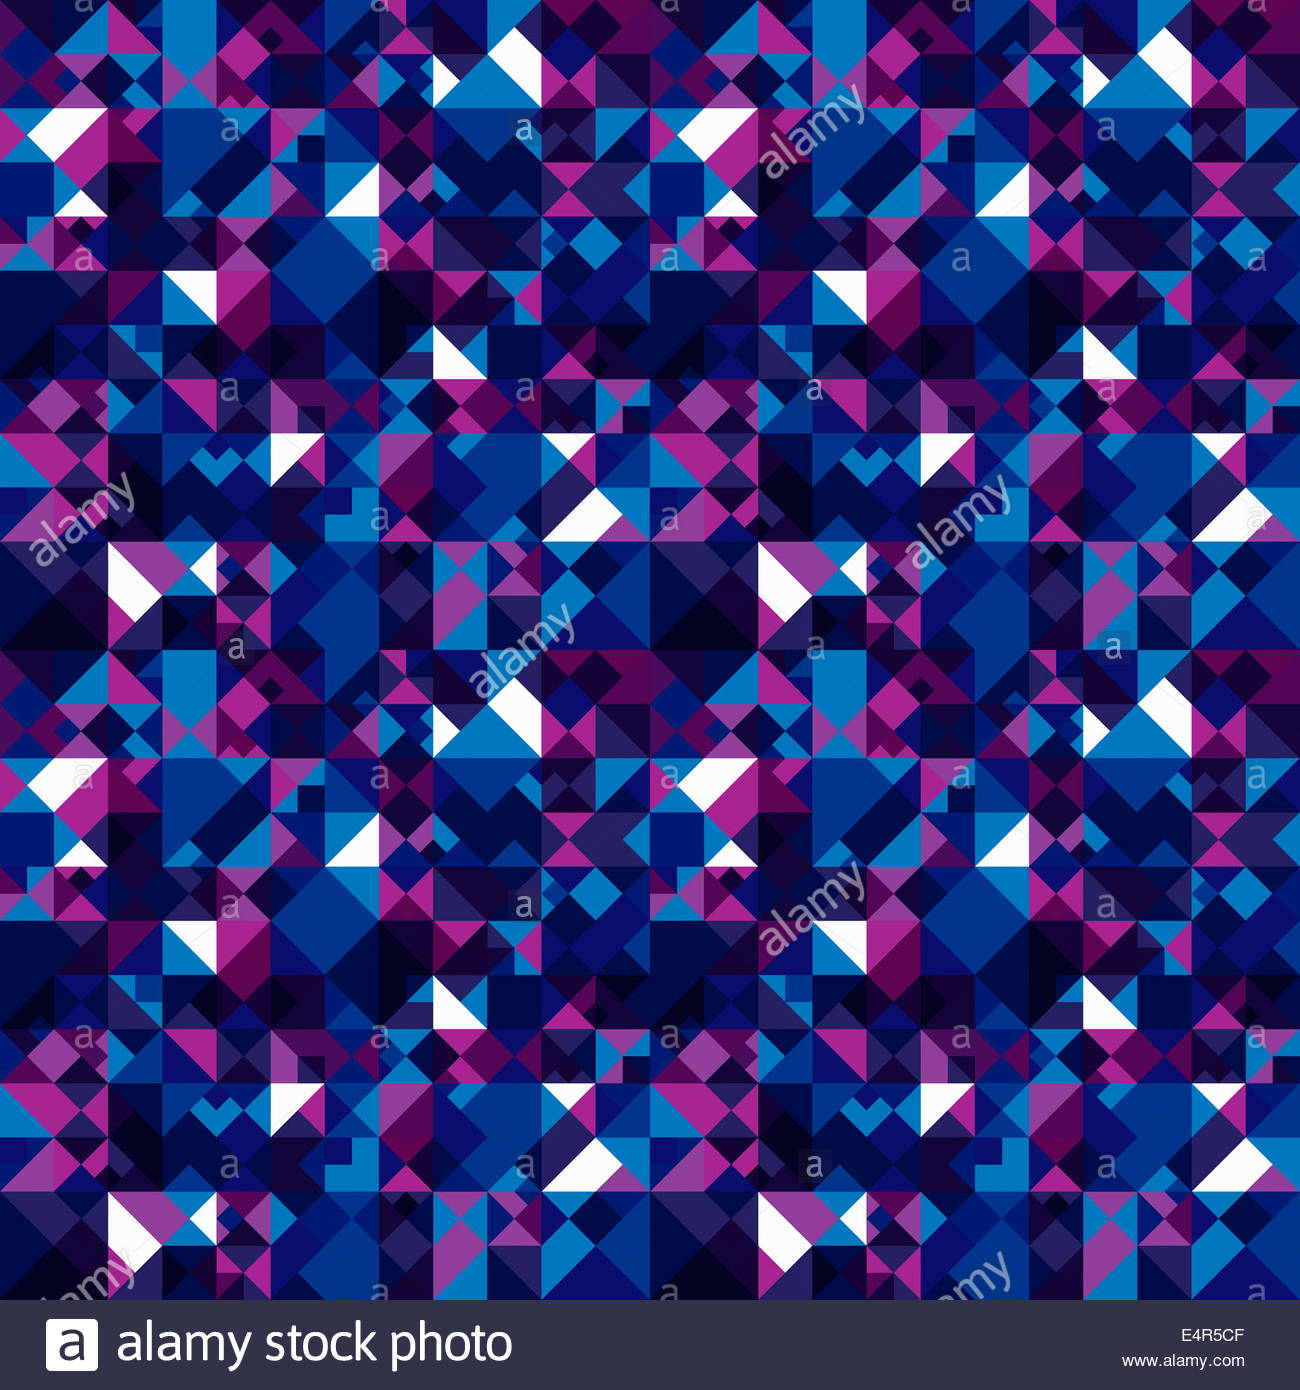 Abstract backgrounds pattern of dark geometric shapes - Stock Image